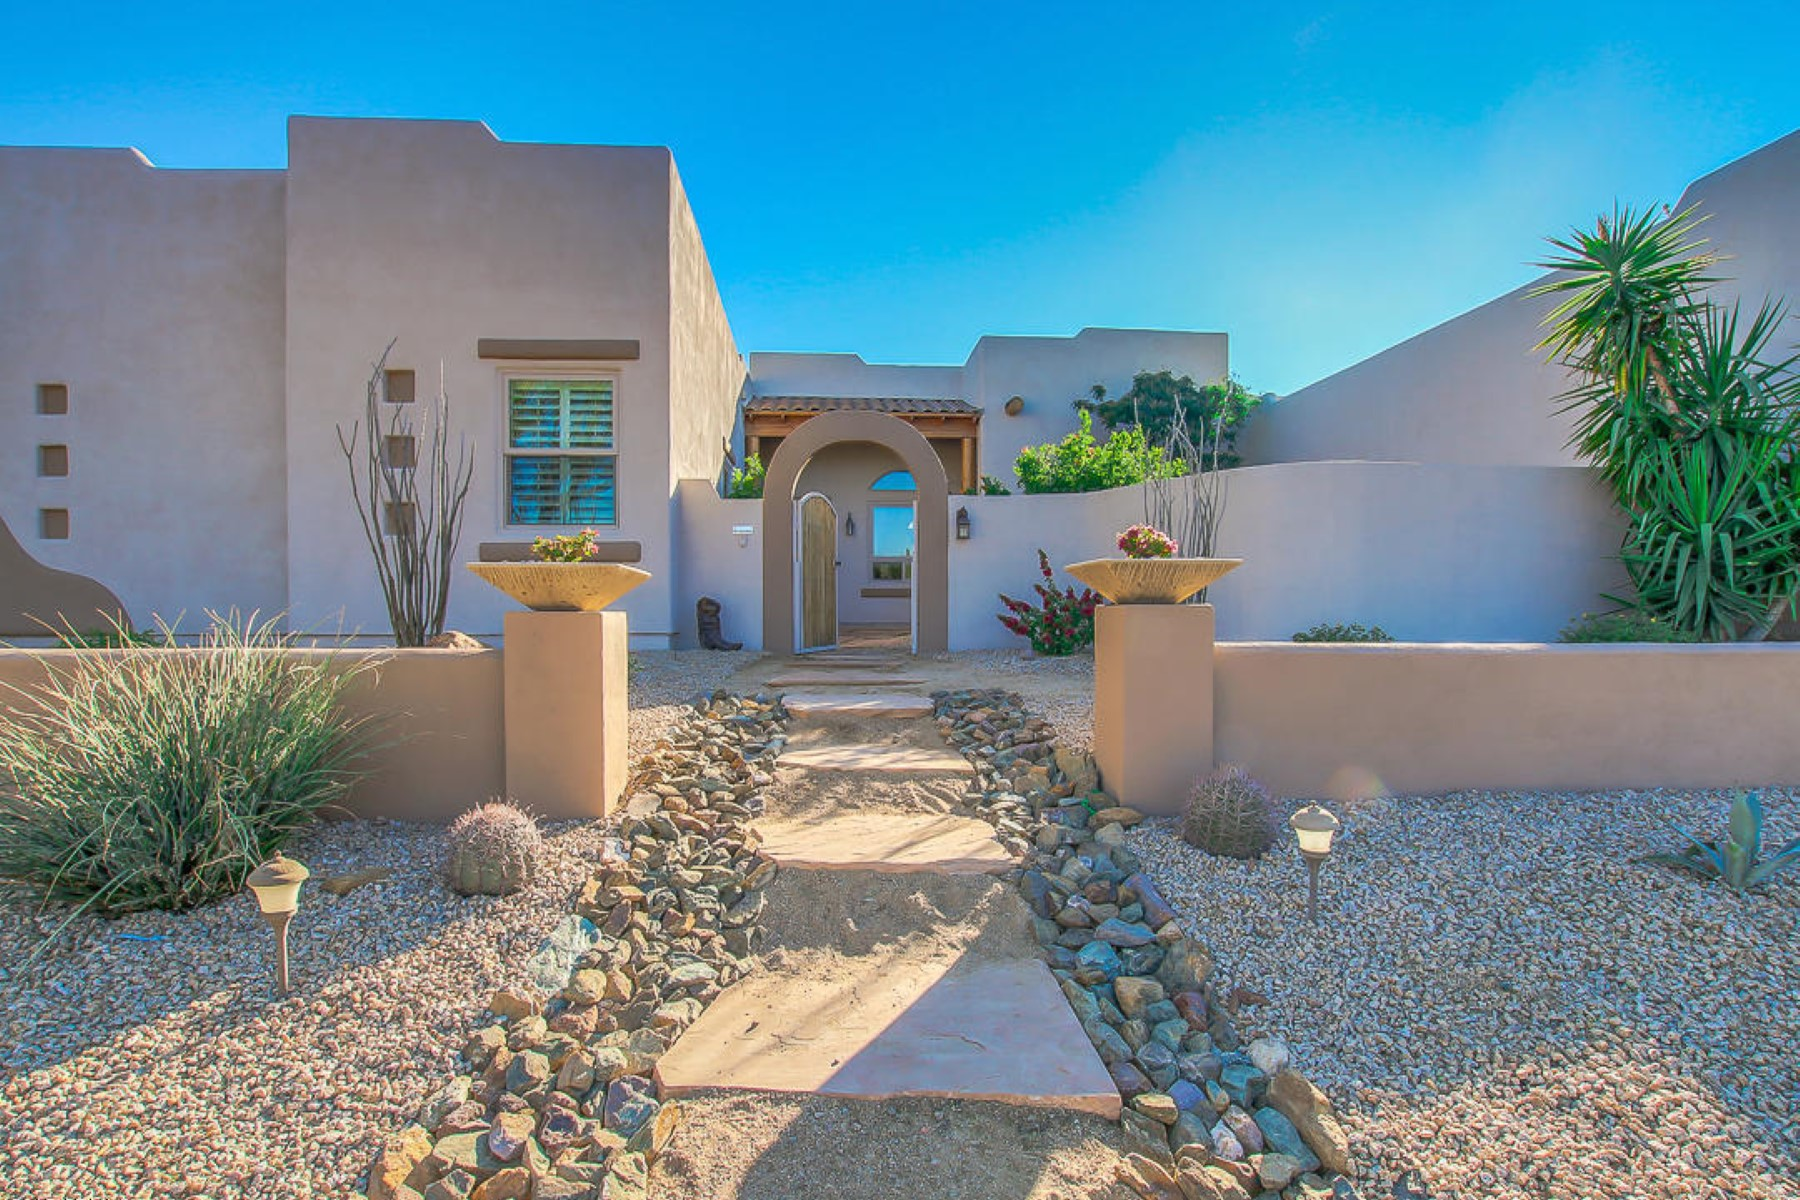 Single Family Home for Sale at Custom home living at its finest on 1.5 acres 5533 E Lone Mountain Rd Cave Creek, Arizona 85331 United States